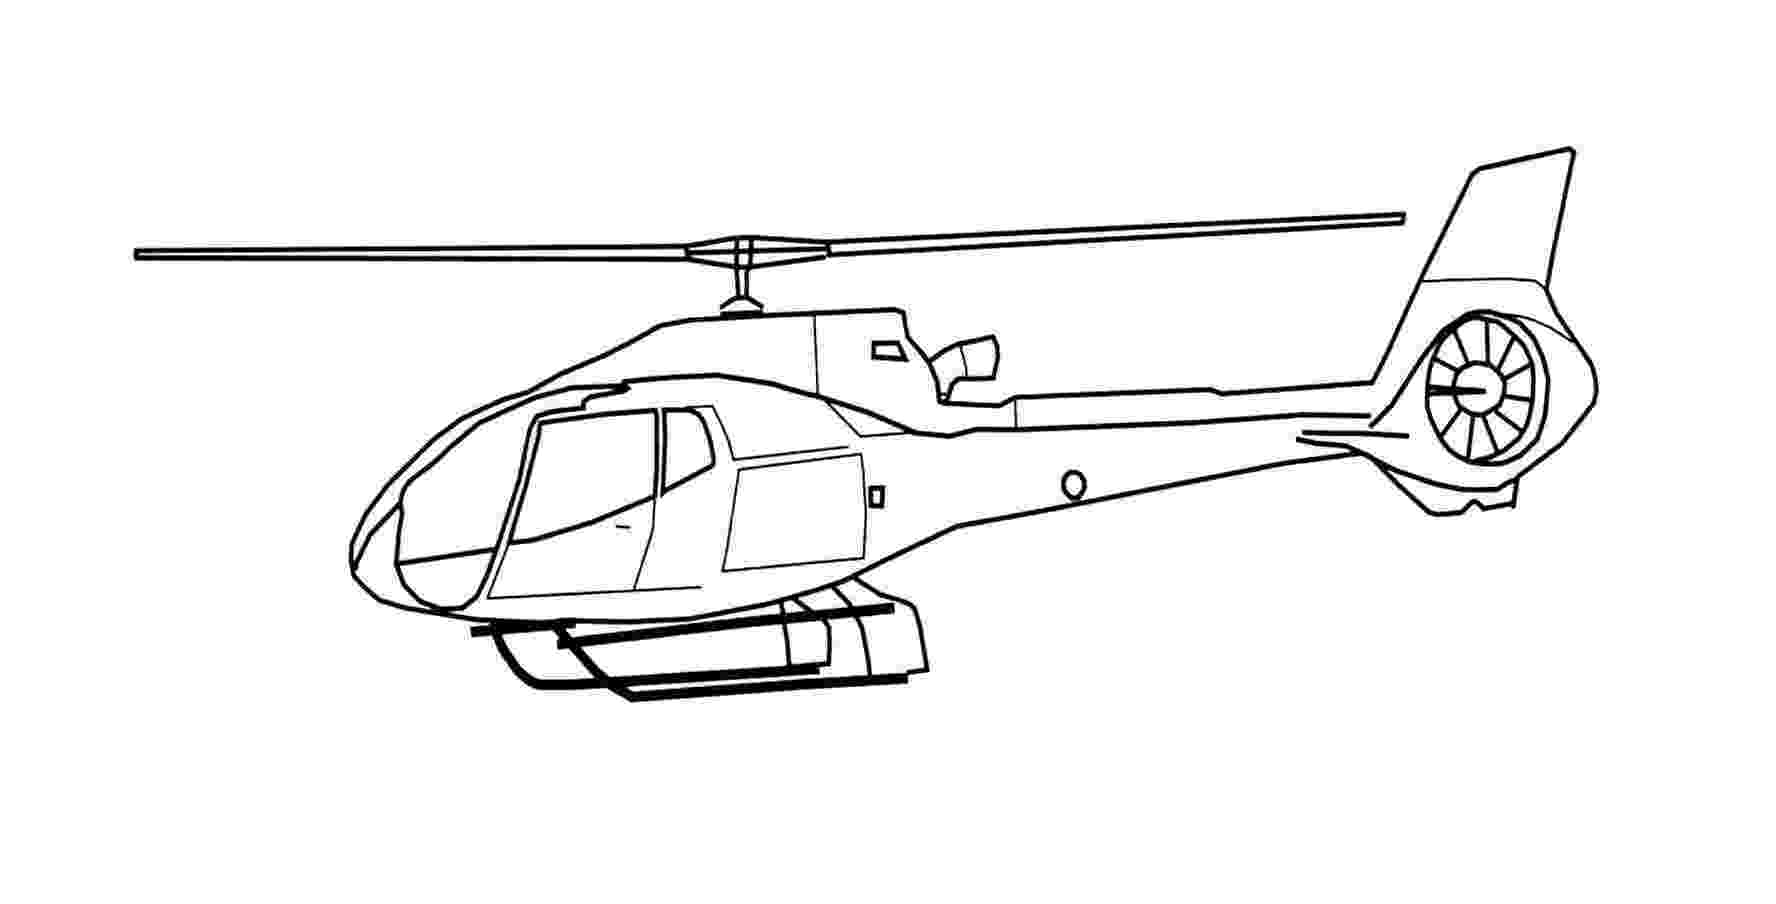 helicopter colouring free printable helicopter coloring pages for kids helicopter colouring 1 1